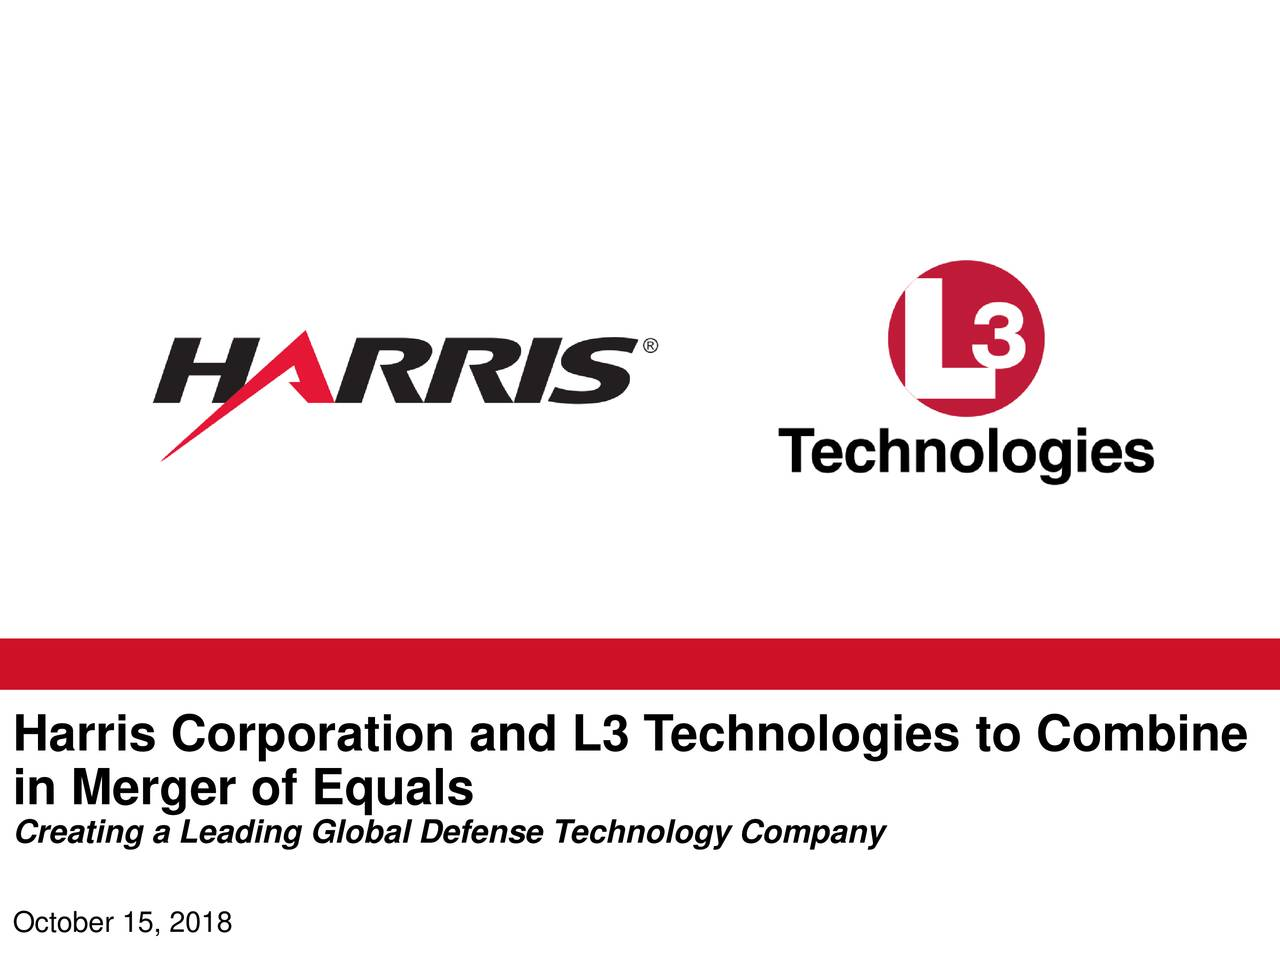 Harris (HRS) And L3 Technologies (LLL) To Merge - Slideshow